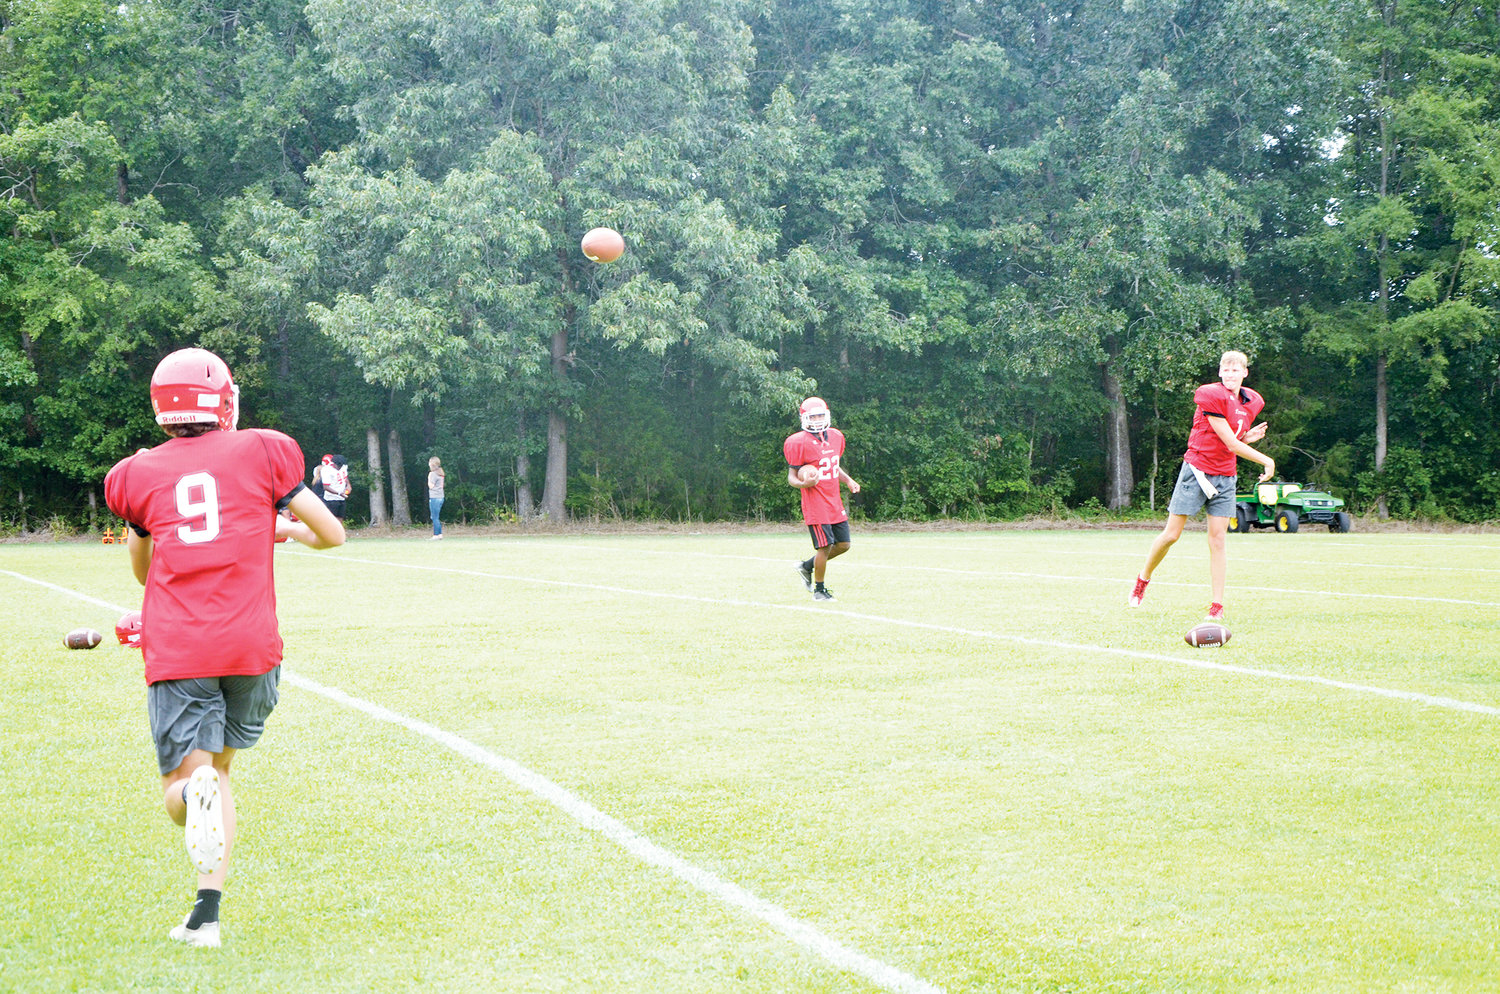 Chatham Central's Micah Gurley catches a pass from Michael Moore Monday afternoon at a pre-season practice for the Bears while Malachi Moore, center, watches on. Chatham Central kicks off its 2019 campaign August 23 against Eastern Randolph.